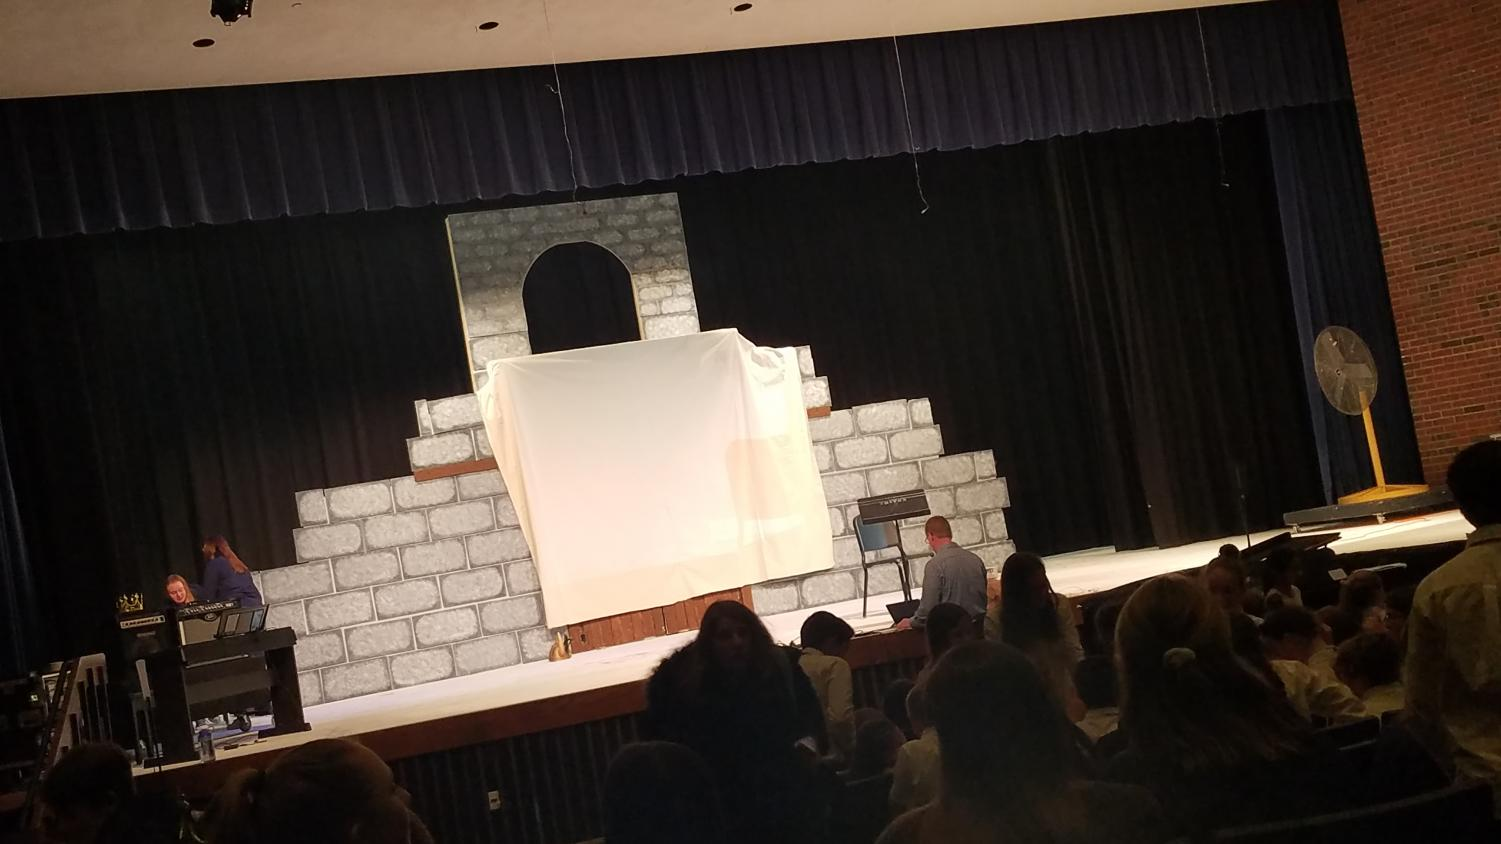 The+screen+for+karaoke+was+placed+in+%27Spamalot%27s%27+castle+themed+set.